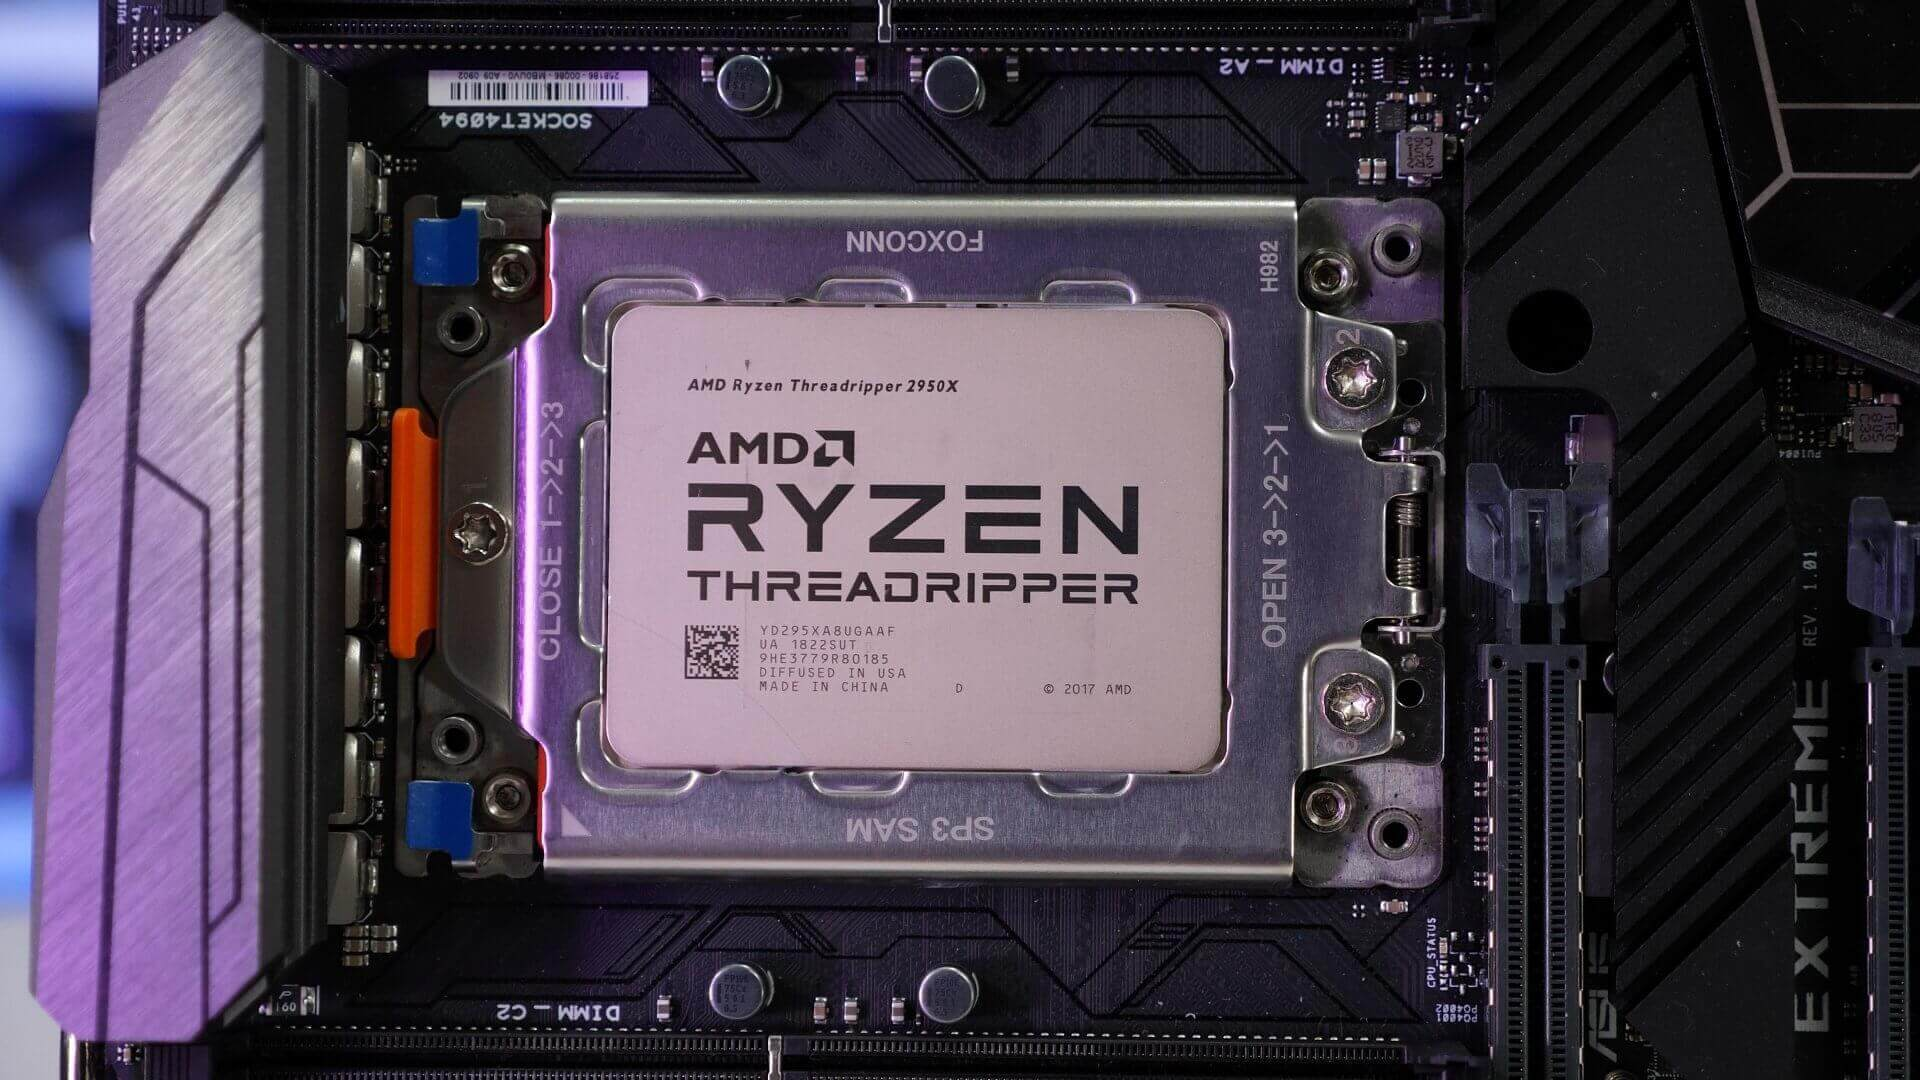 Amd Commits To Long Term Support For Strx4 Cpu Socket Used With Third Gen Threadripper